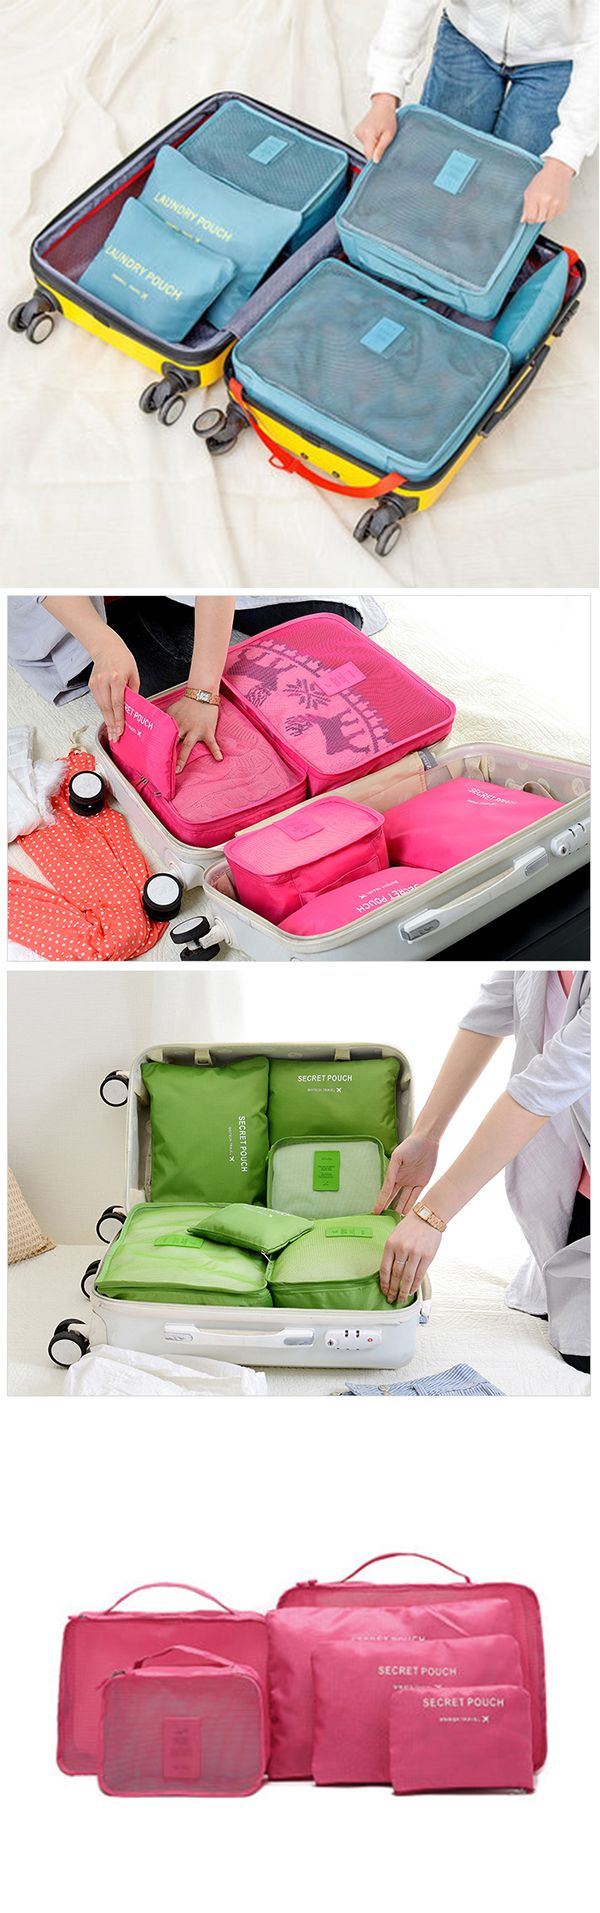 Us1199 Free Shippingmaterial Oxford Fabric 7 Colors To Match Value Pack Travel Size Pouch 6 X Waterproof Storage Bag Multi In A Set